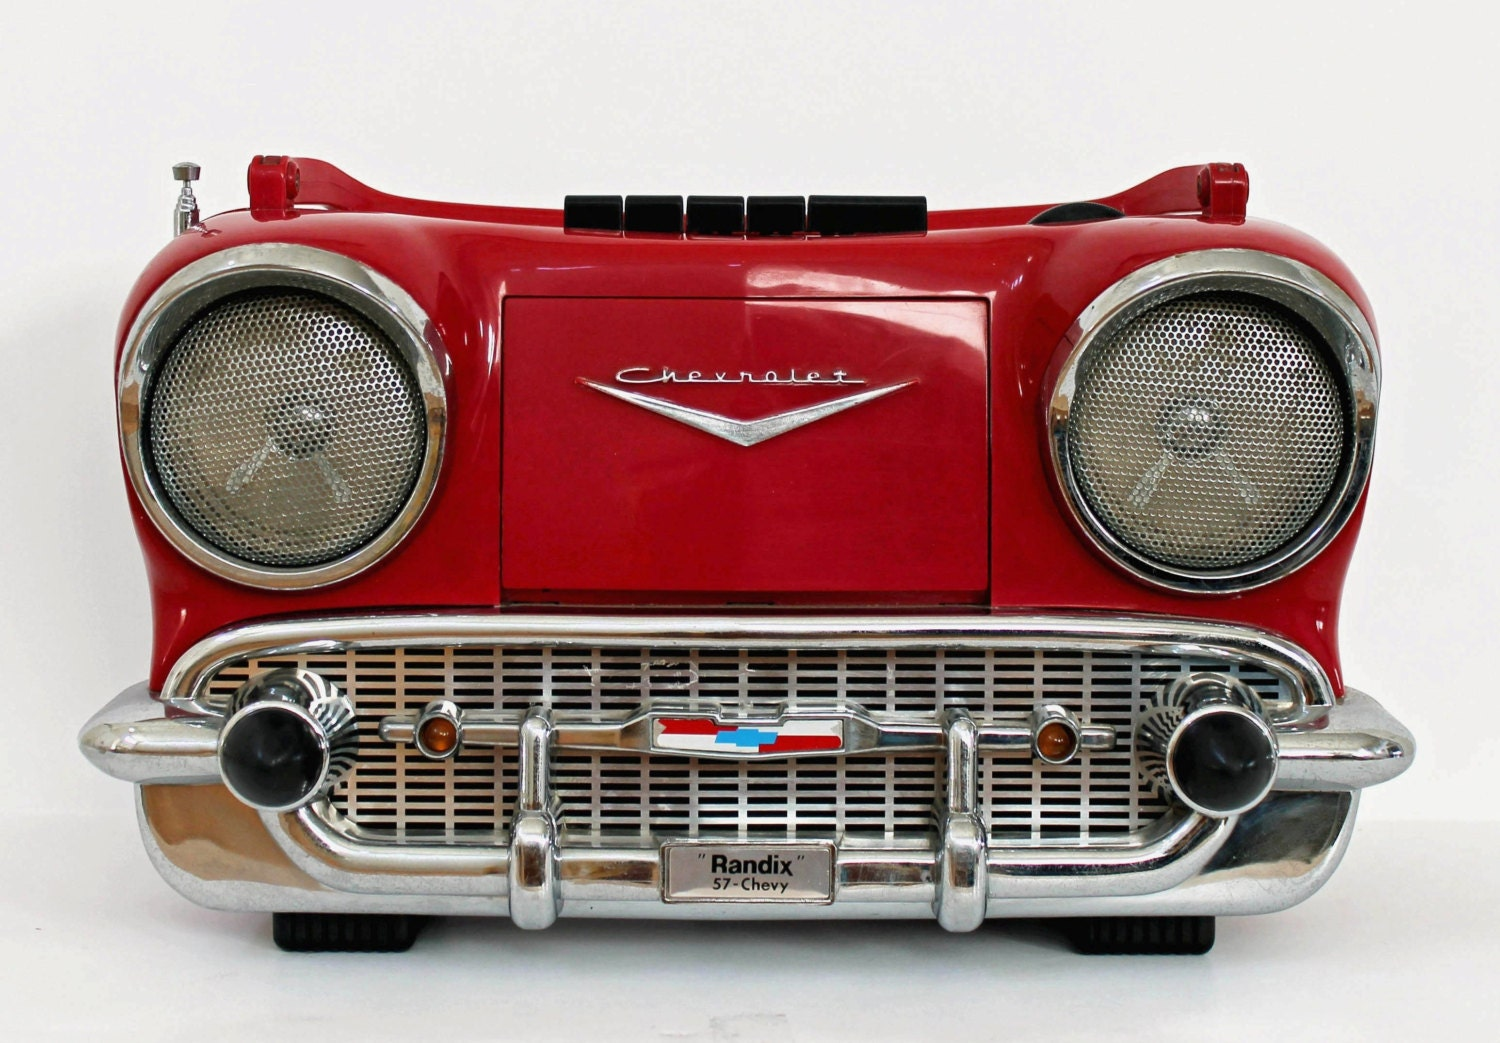 Vintage randix 57 chevy am fm novelty radio by abslewtlyvintage